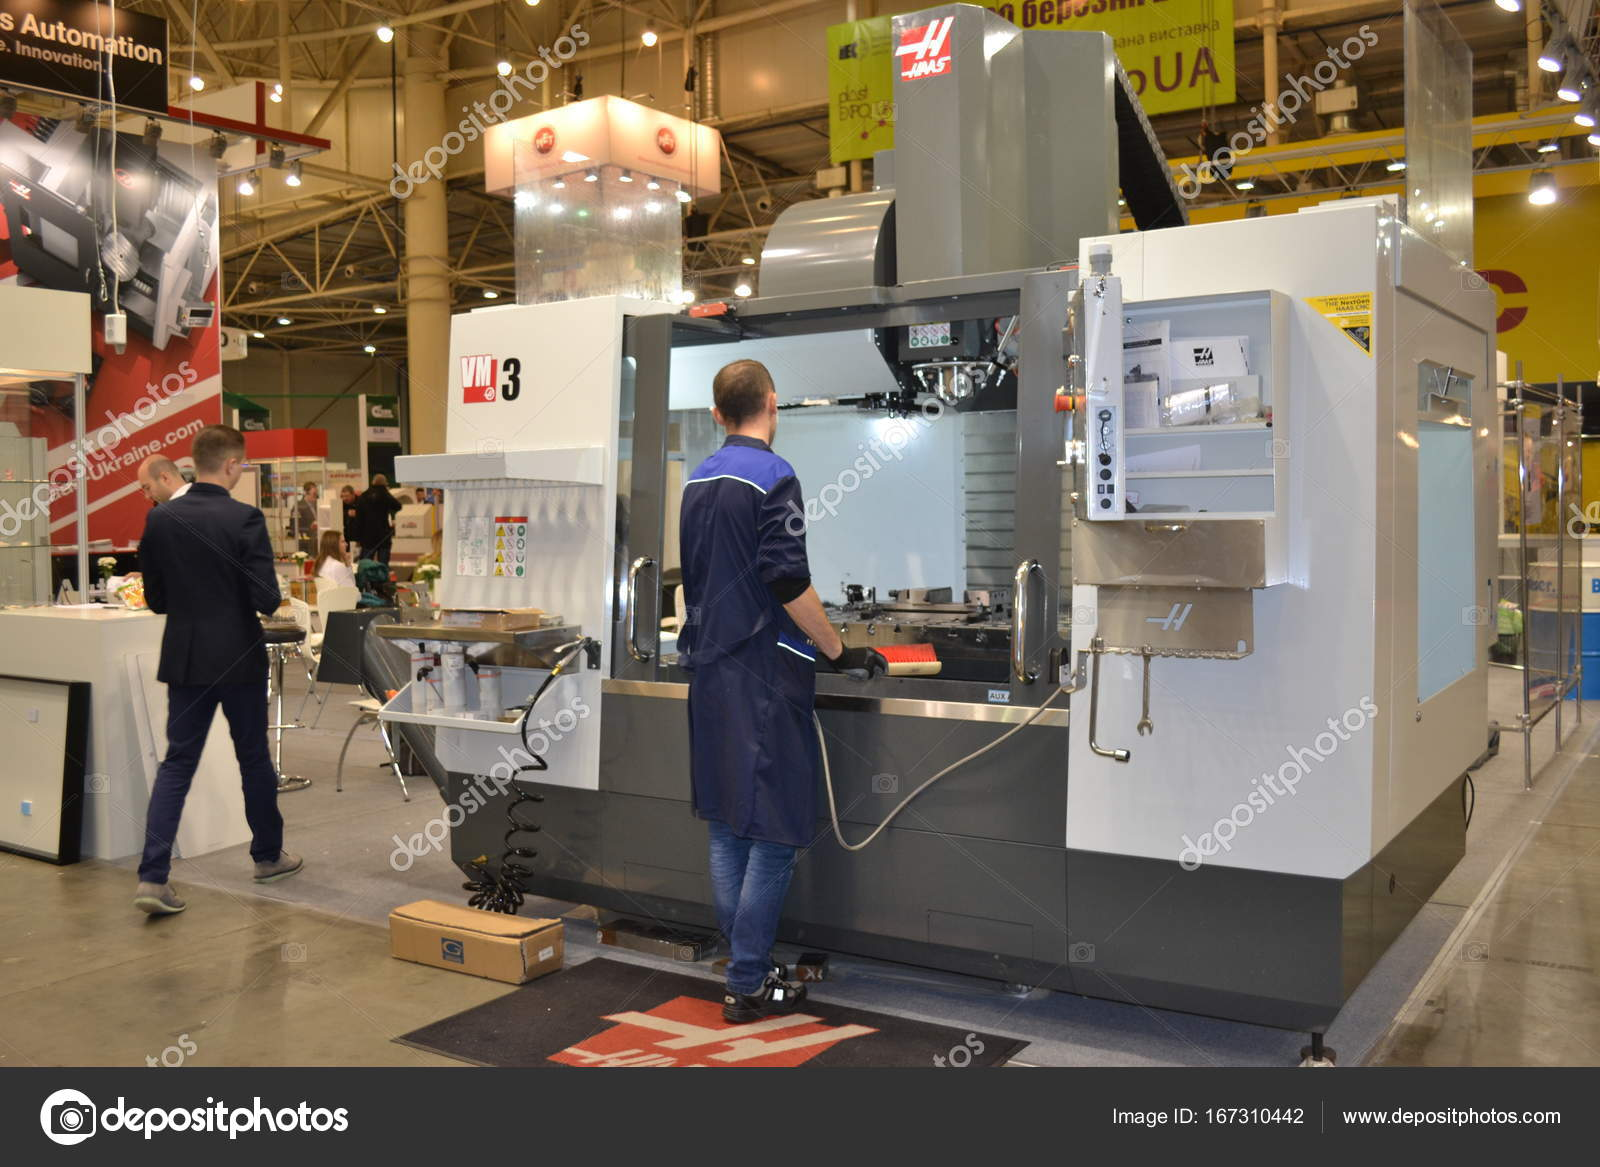 Industrial machinery, Industrial equipment, Industrial facilities and  machine tools, machinery lathes – Stock Editorial Photo © Marina1408  #167310442